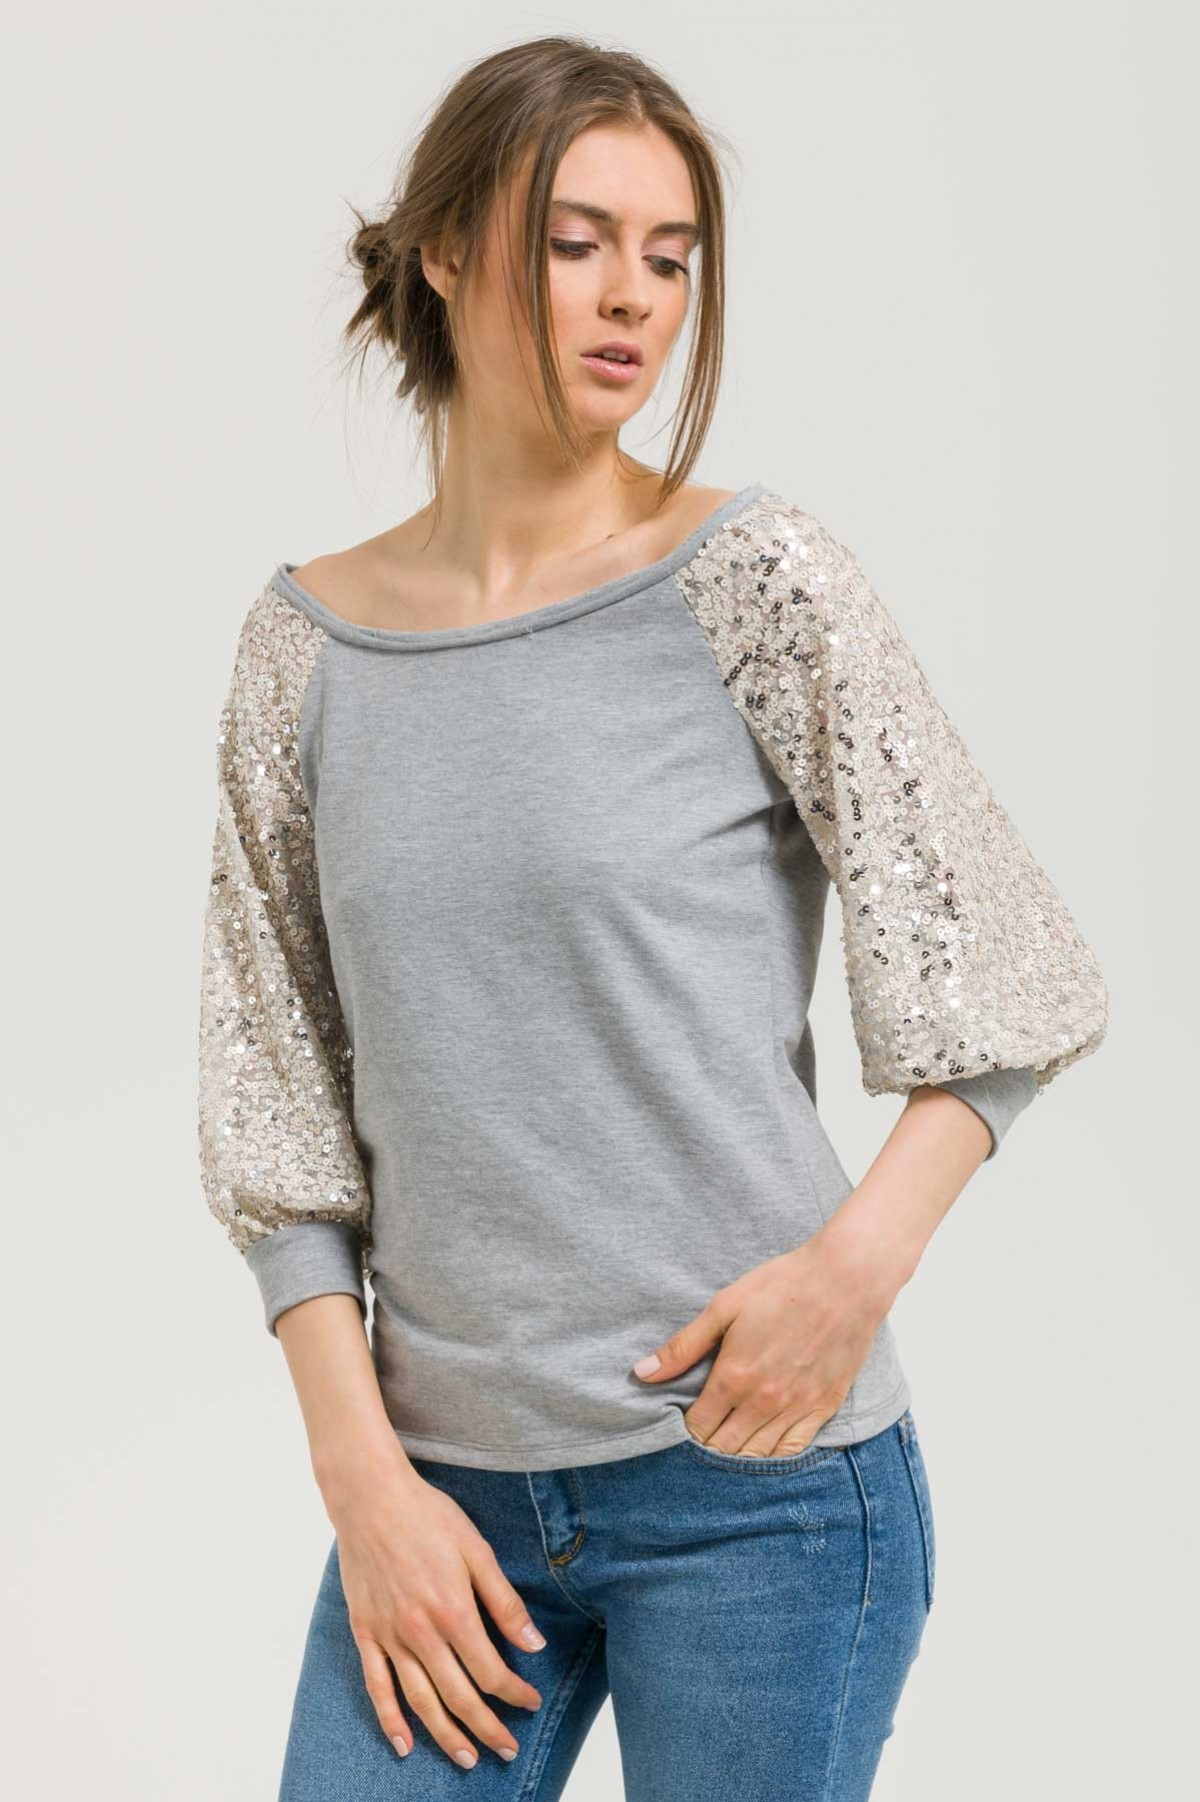 GREY SEQUIN SLEEVE SWEATSHIRT